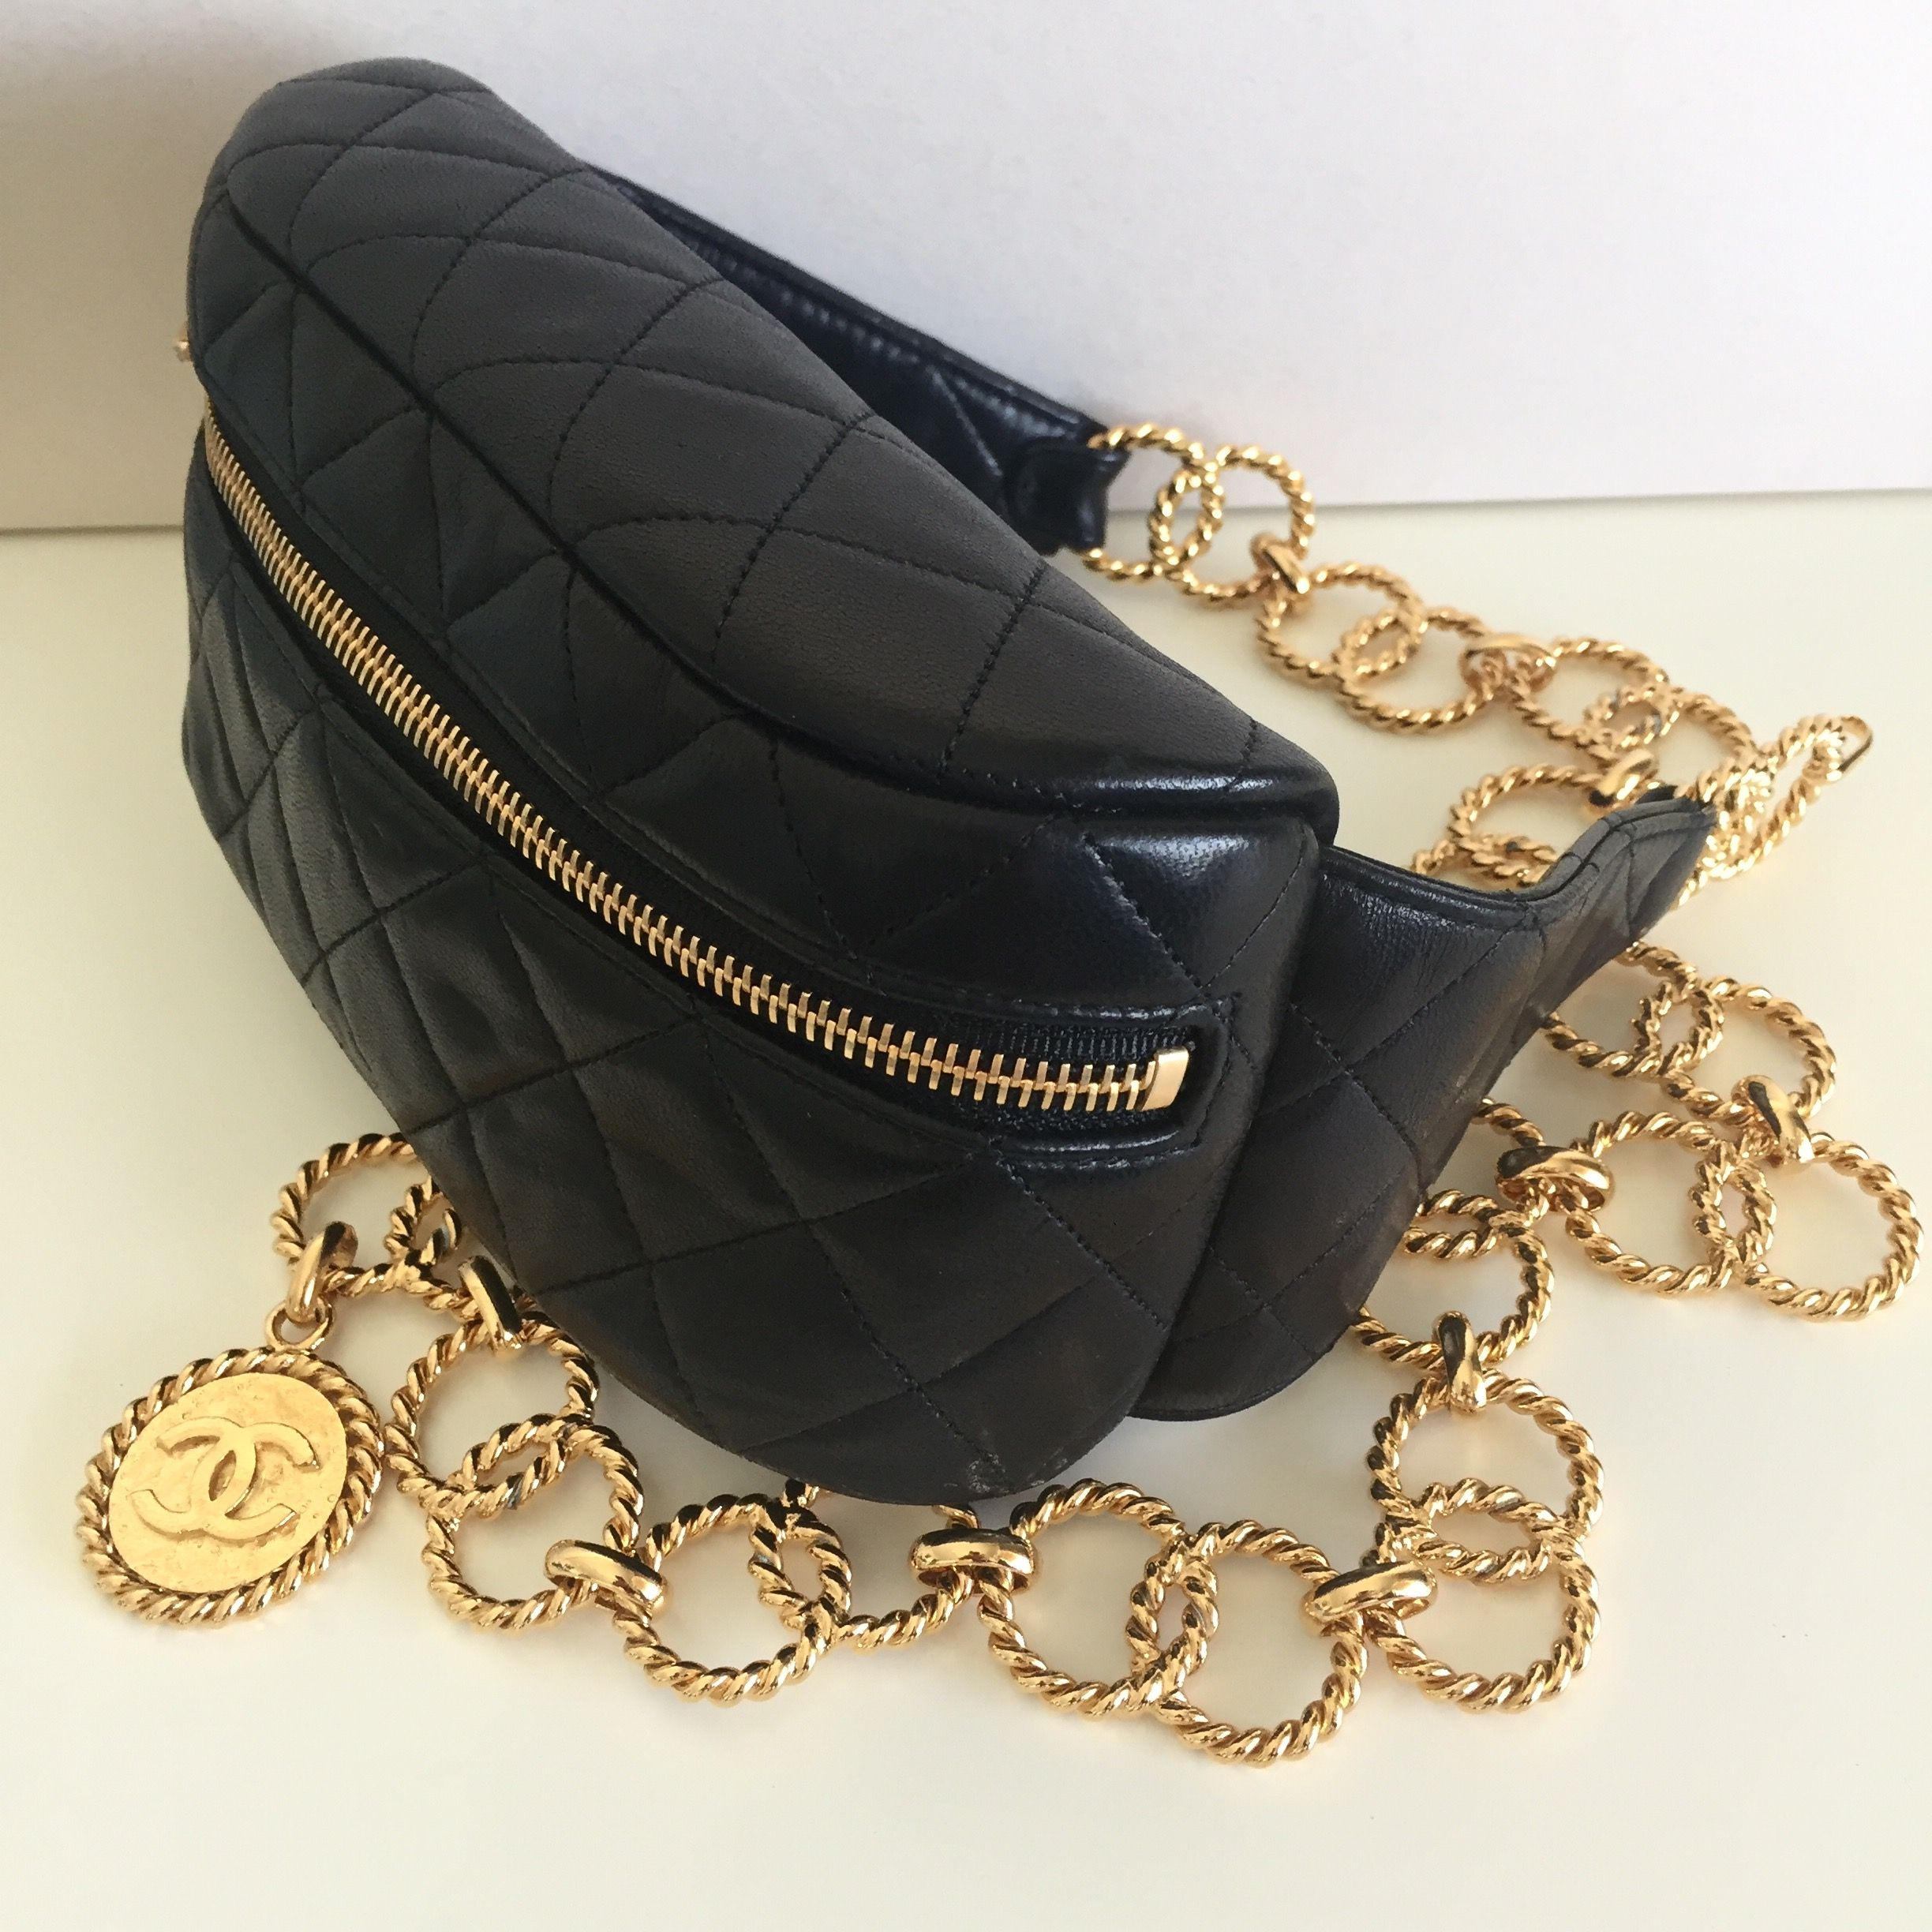 9f0b4a32 Vintage CHANEL Waist Bag with chain belt | Coco Chanel